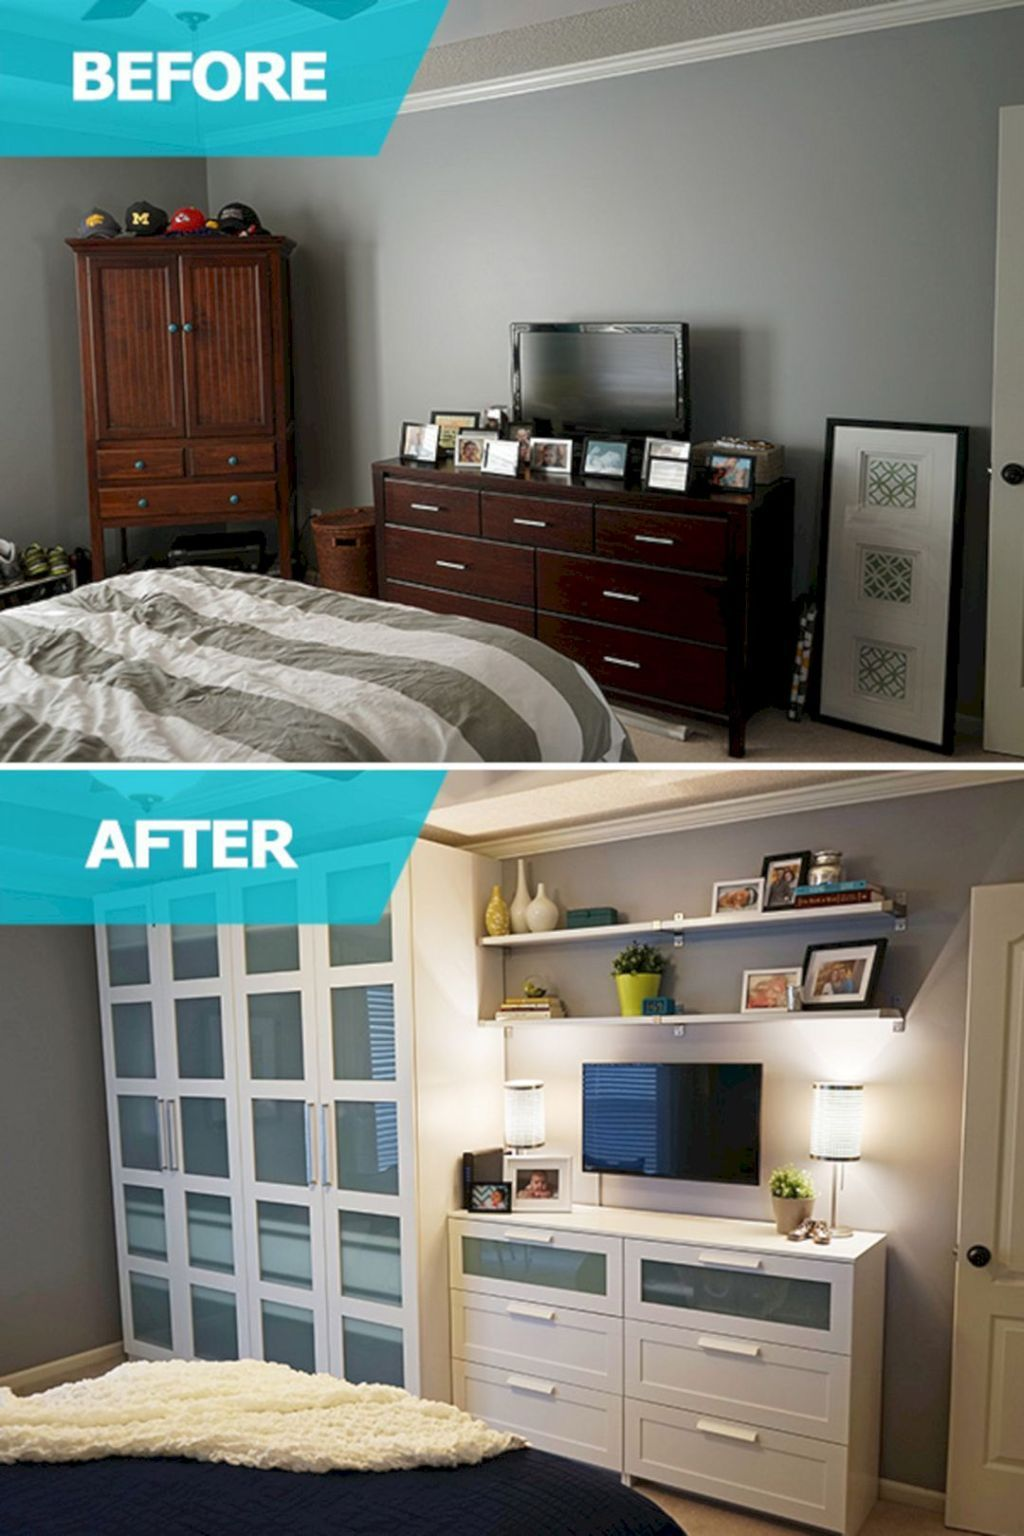 The Best Bedroom Storage Ideas For Small Room Spaces No 7  Ikea